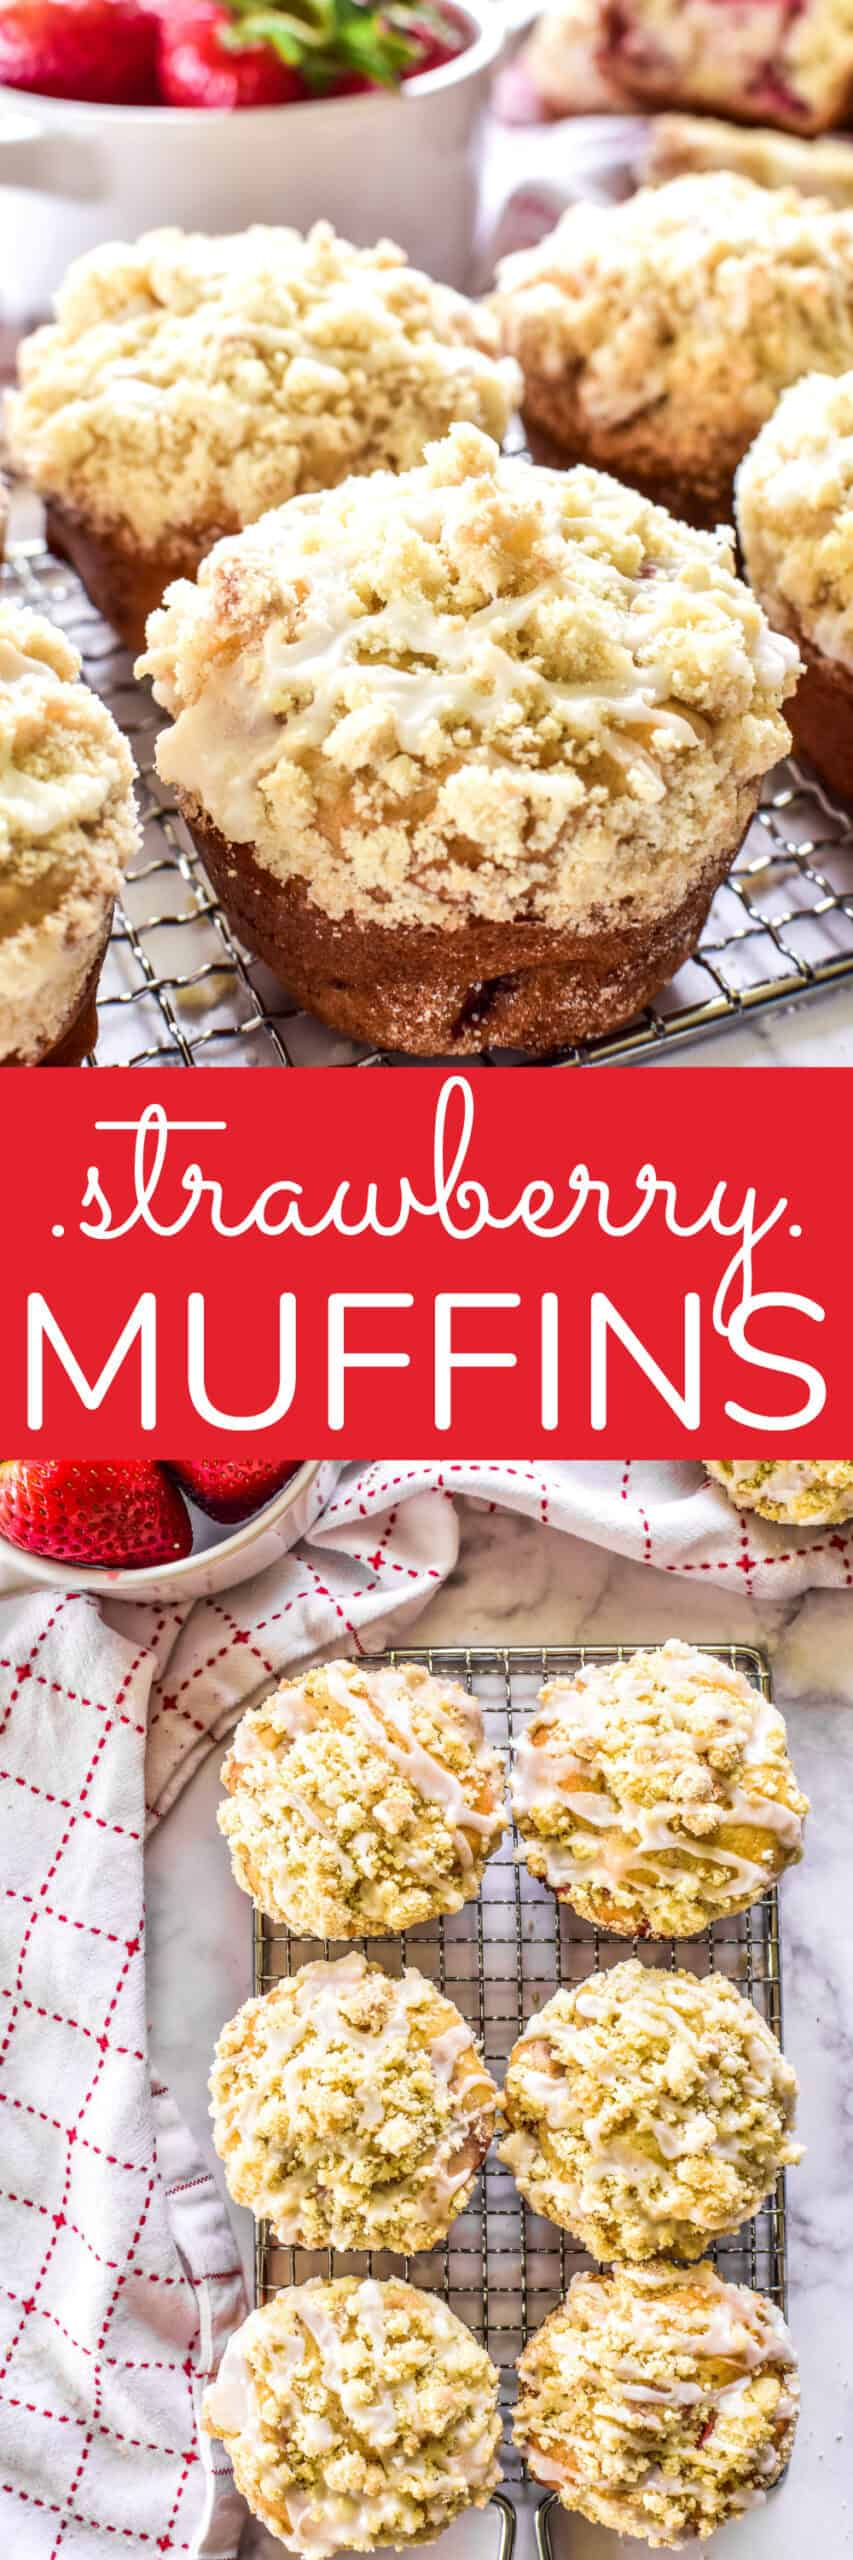 Collage image of Strawberry Muffins